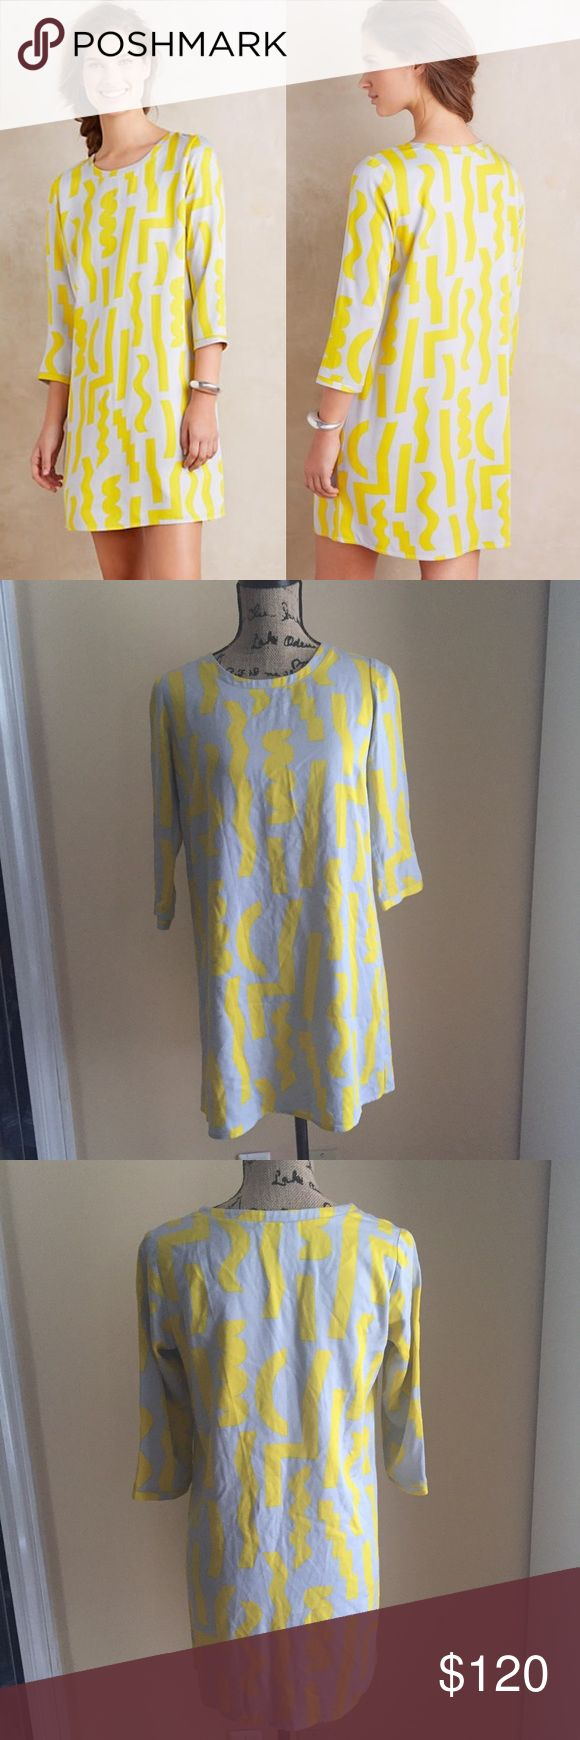 Duane Dusen Yellow Sunbent Shift Dress Dusen Dusen X Anthropologie Yellow Sunbent Shift Dress - NWOT - Size XXS - A Clean-cut shift complete with a zingy graphic pattern. Made in the USA by Brooklyn-based label Dusen Dusen.  Two small marks as seen in photos.   Rayon Shift silhouette 3/4 sleeves Pullover styling Dry clean USA Anthropologie Dresses Mini